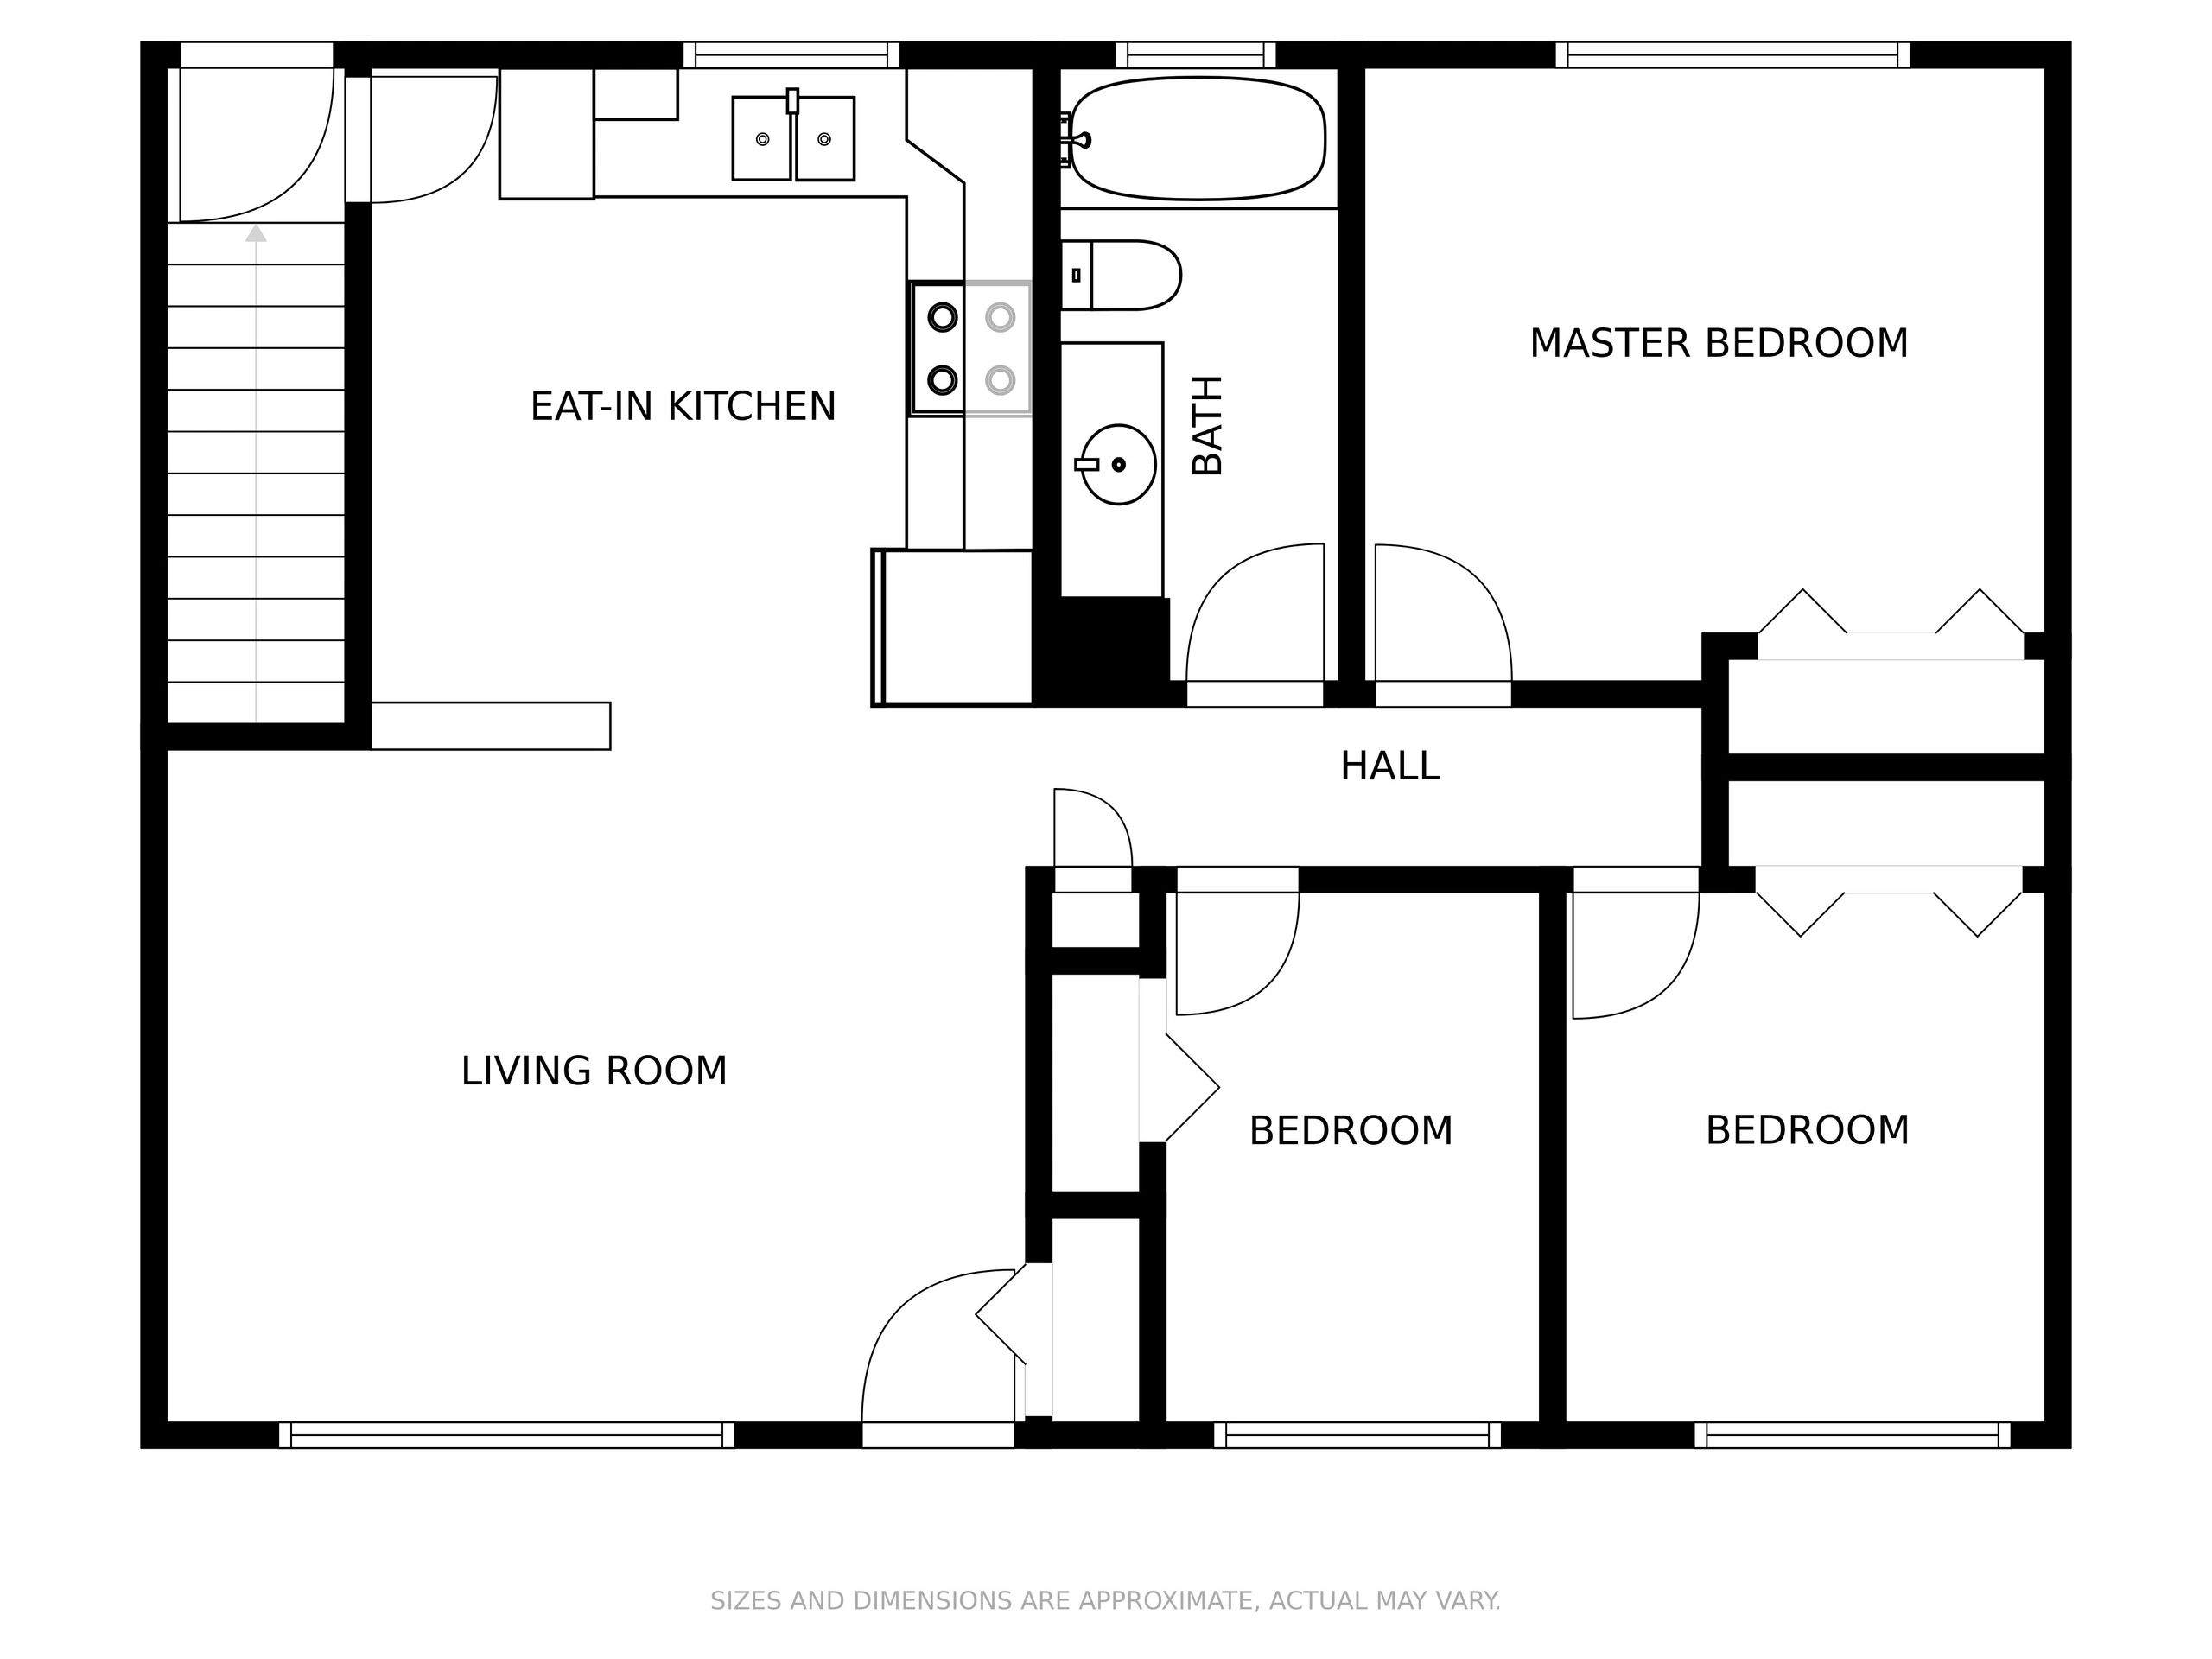 Floor Plans available branded/unbranded or no measurements/measurements. Customization available